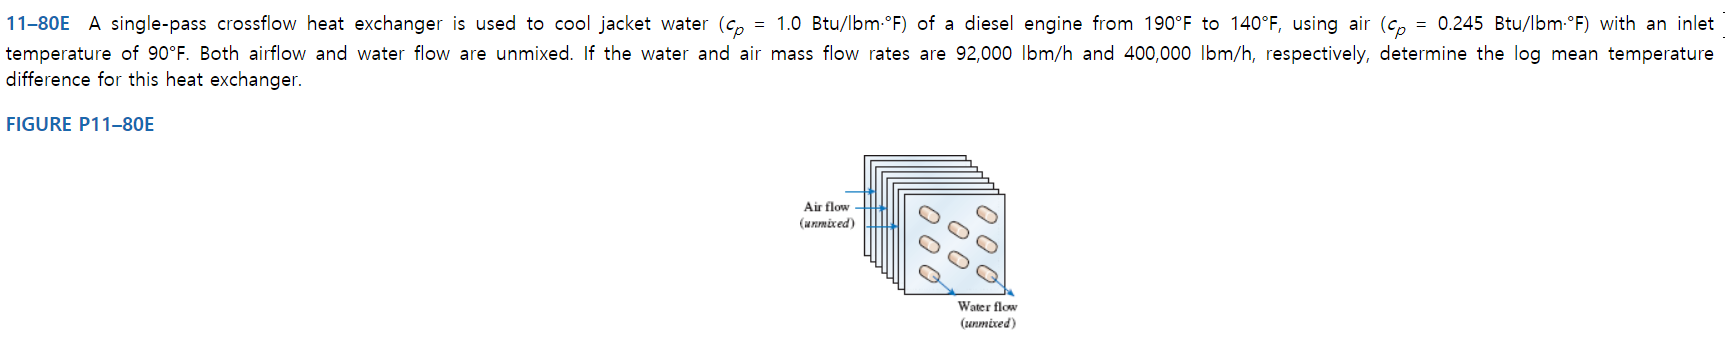 = 1.0 Btu/lbm-°F) of a diesel engine from 190°F to 140°F, using air (c = 0.245 Btu/lbm F) with an inlet 11-80E A single-pass crossflow heat exchanger is used to cool jacket water (cp temperature of 90°F. Both airflow and water flow are unmixed. If the water and air mass flow rates are 92,000 lbm/h and 400,000 lbm/h, respectively, determine the log mean temperature difference for this heat exchanger. FIGURE P11-80E Air flow (иктіхеd) Water flow (апmixed)